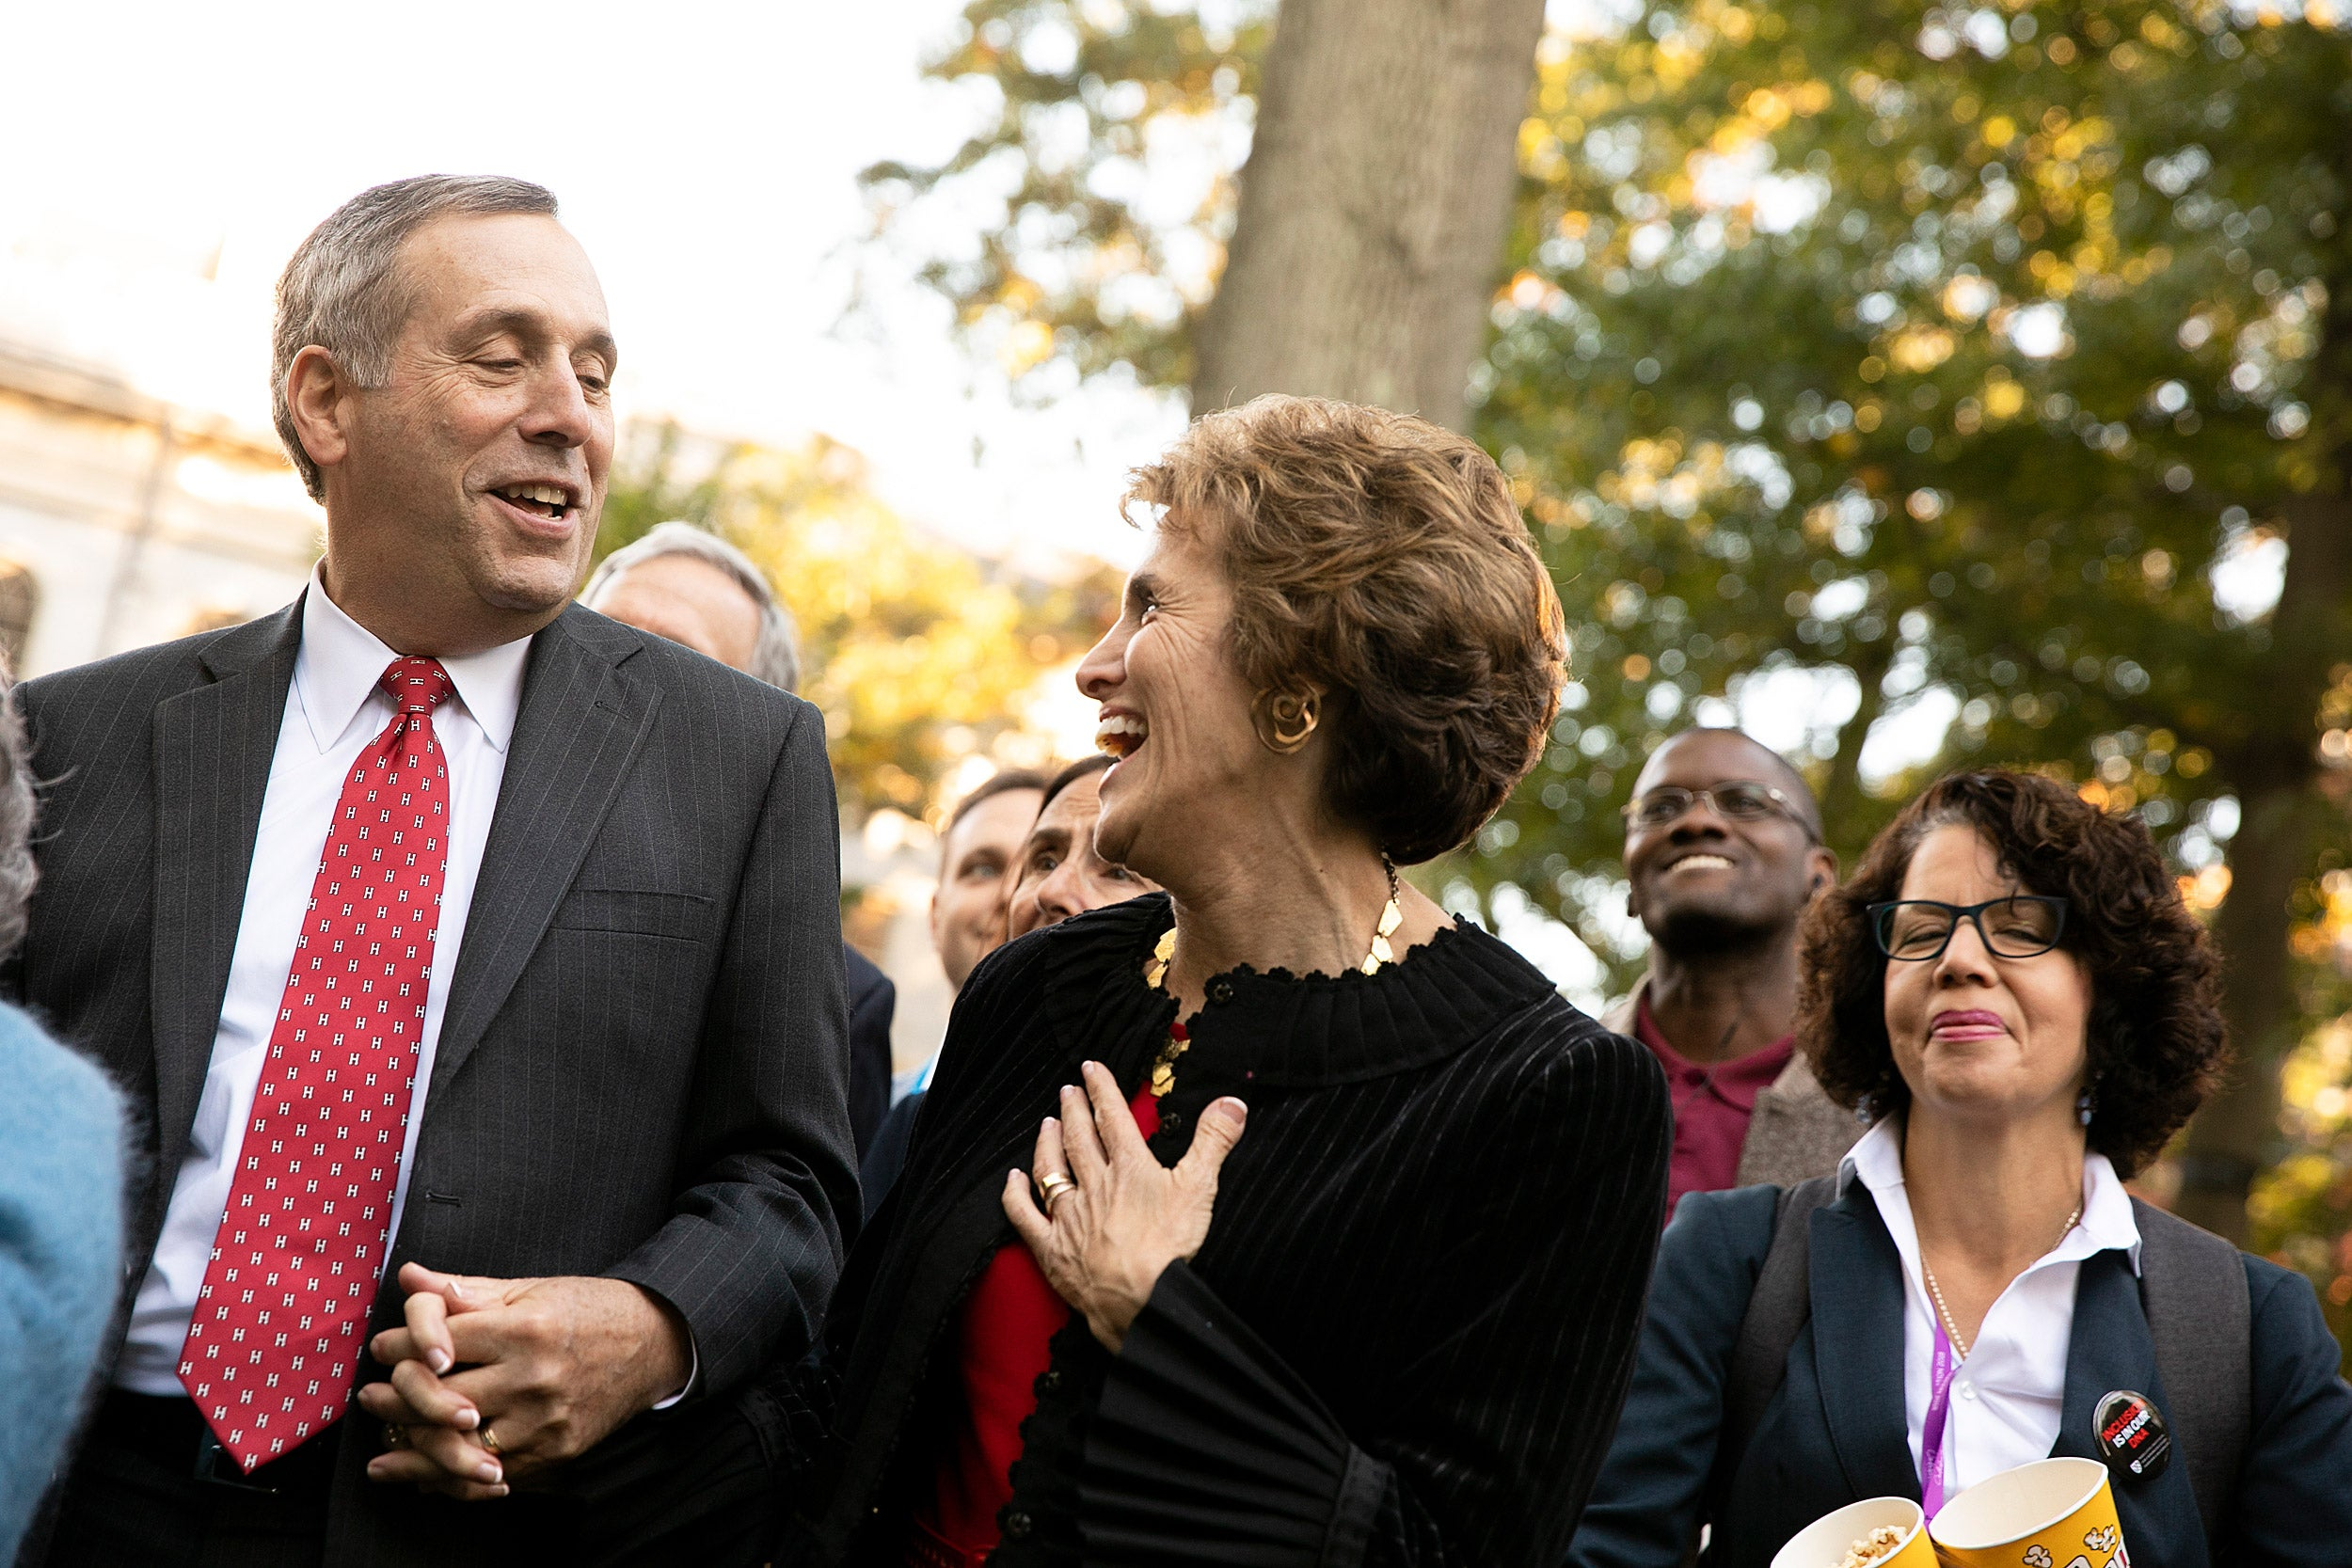 Larry Bacow dances with wife, Adele, after his inauguration as Harvard's 29th president.